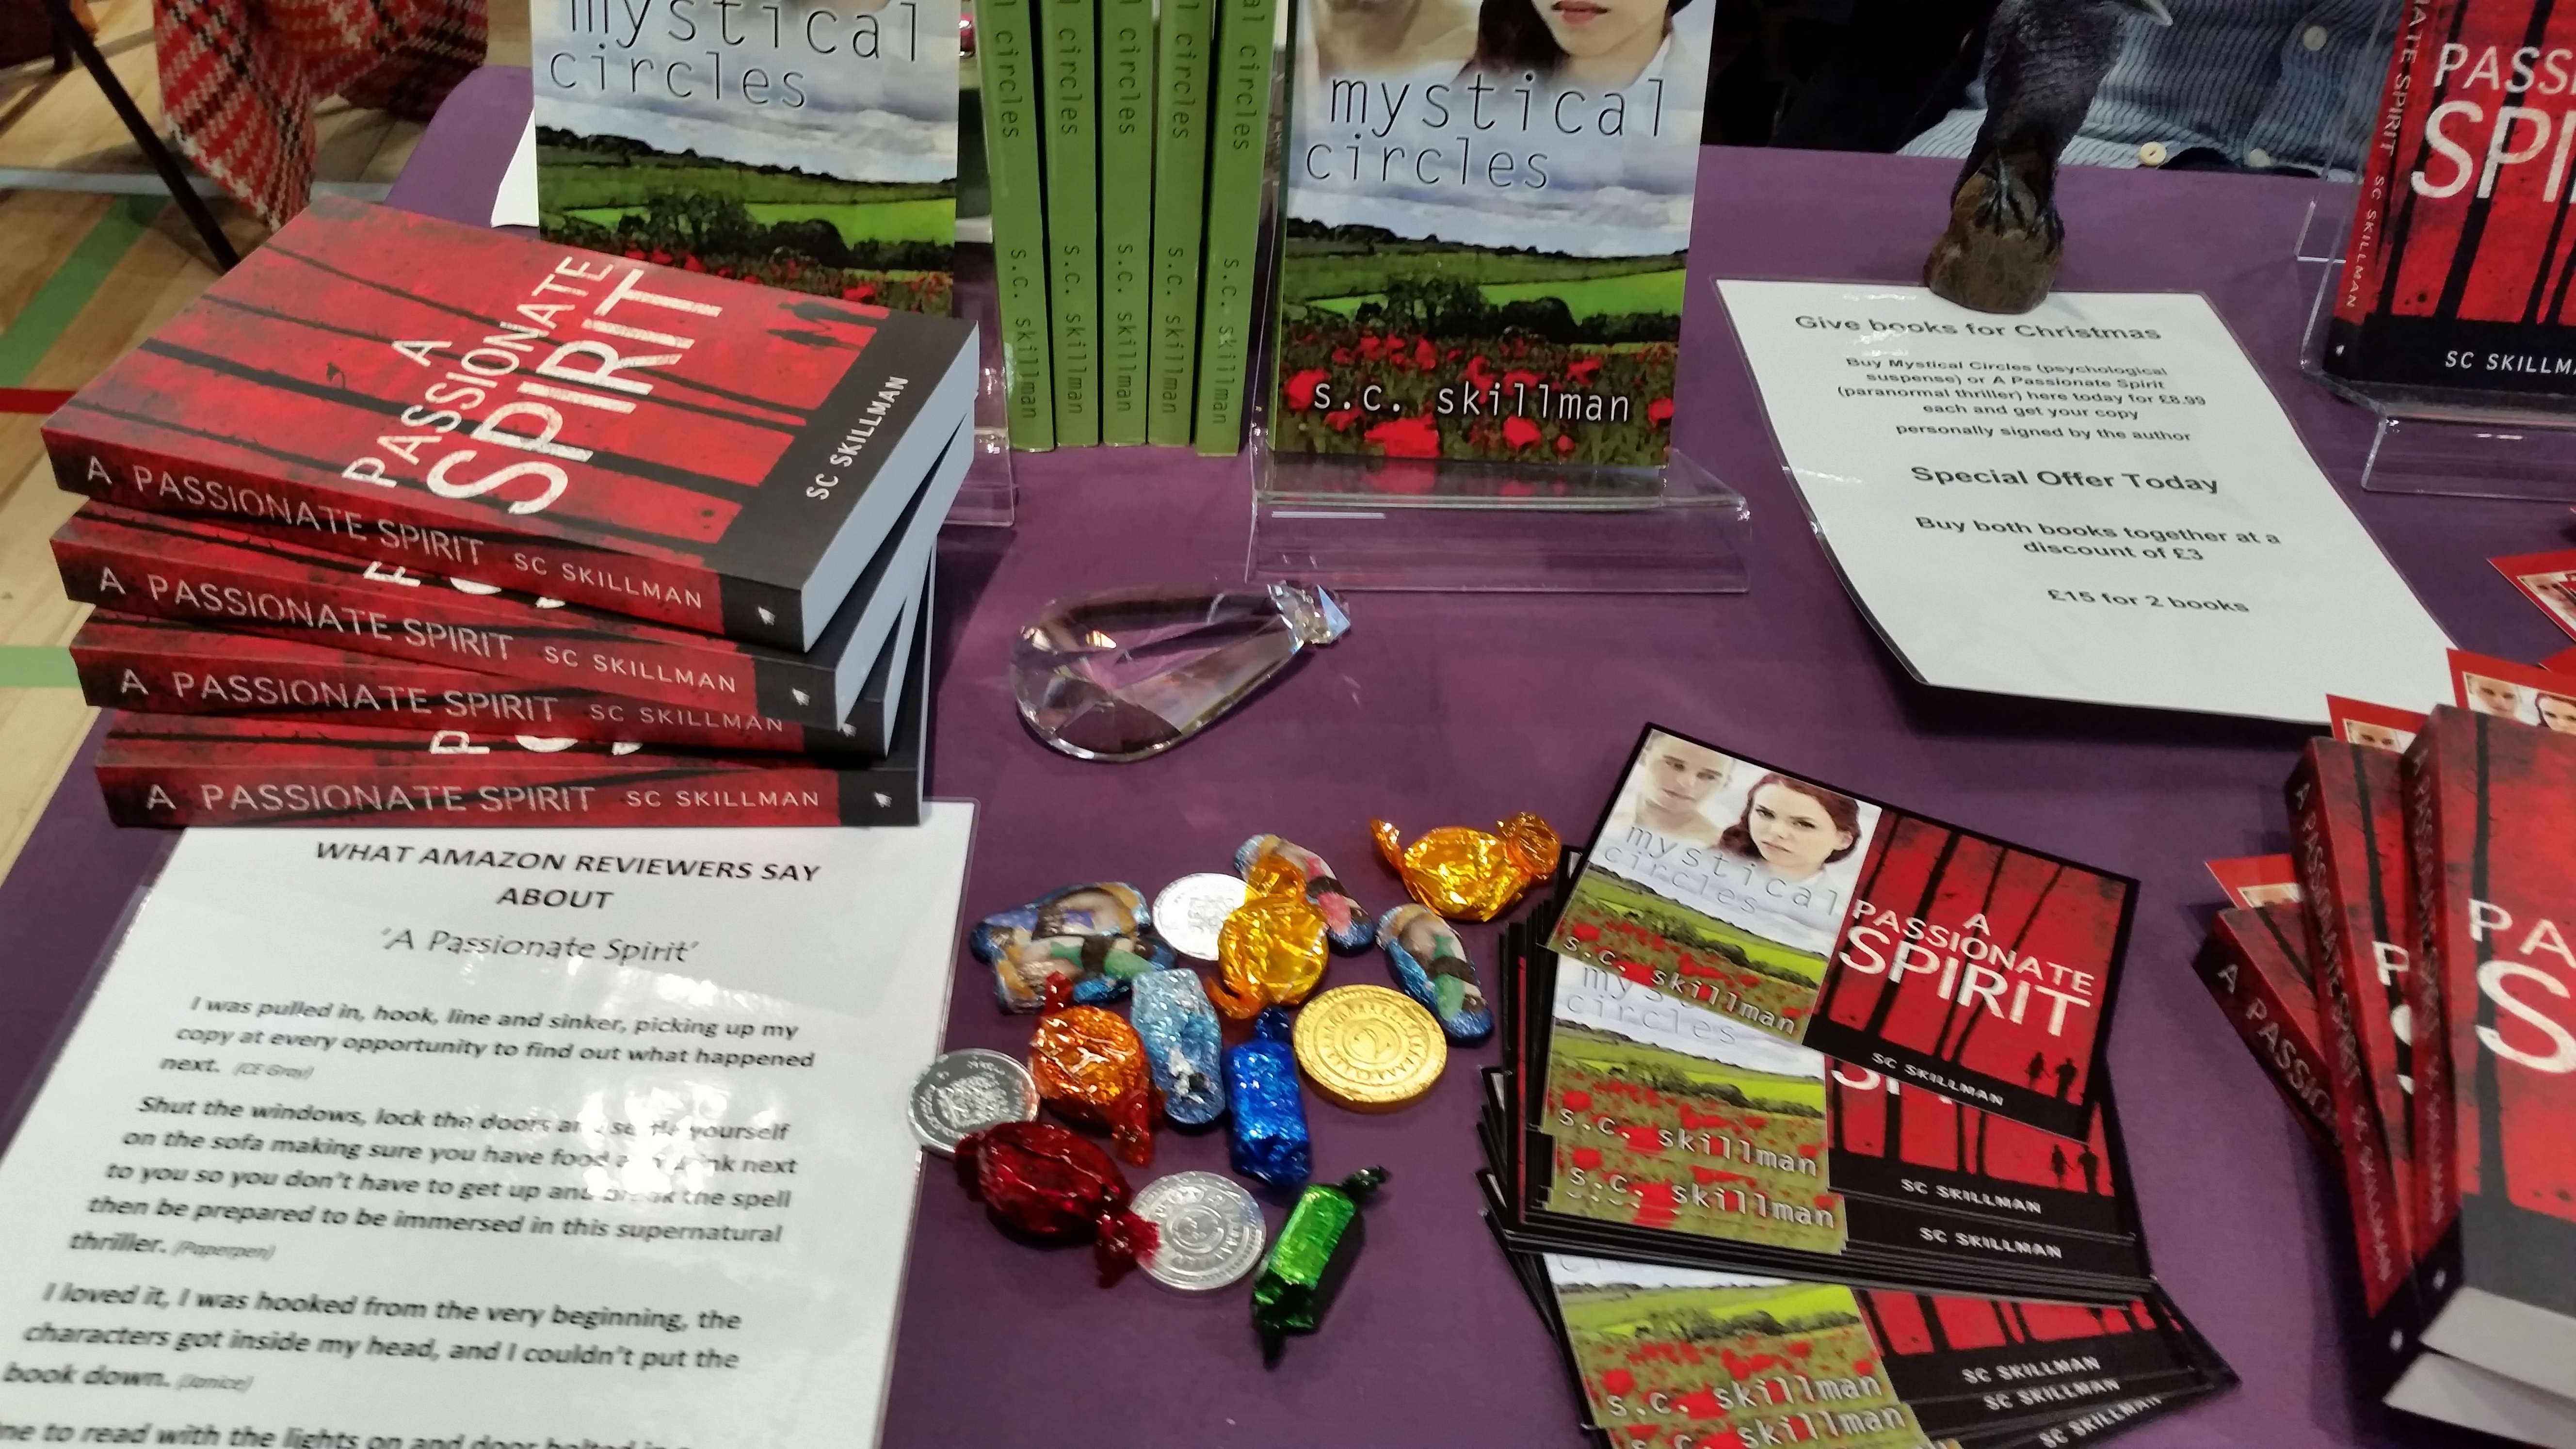 SC Skillman booksigning table at King Edward VI School Christmas Fair 3 Dec 2016.jpg